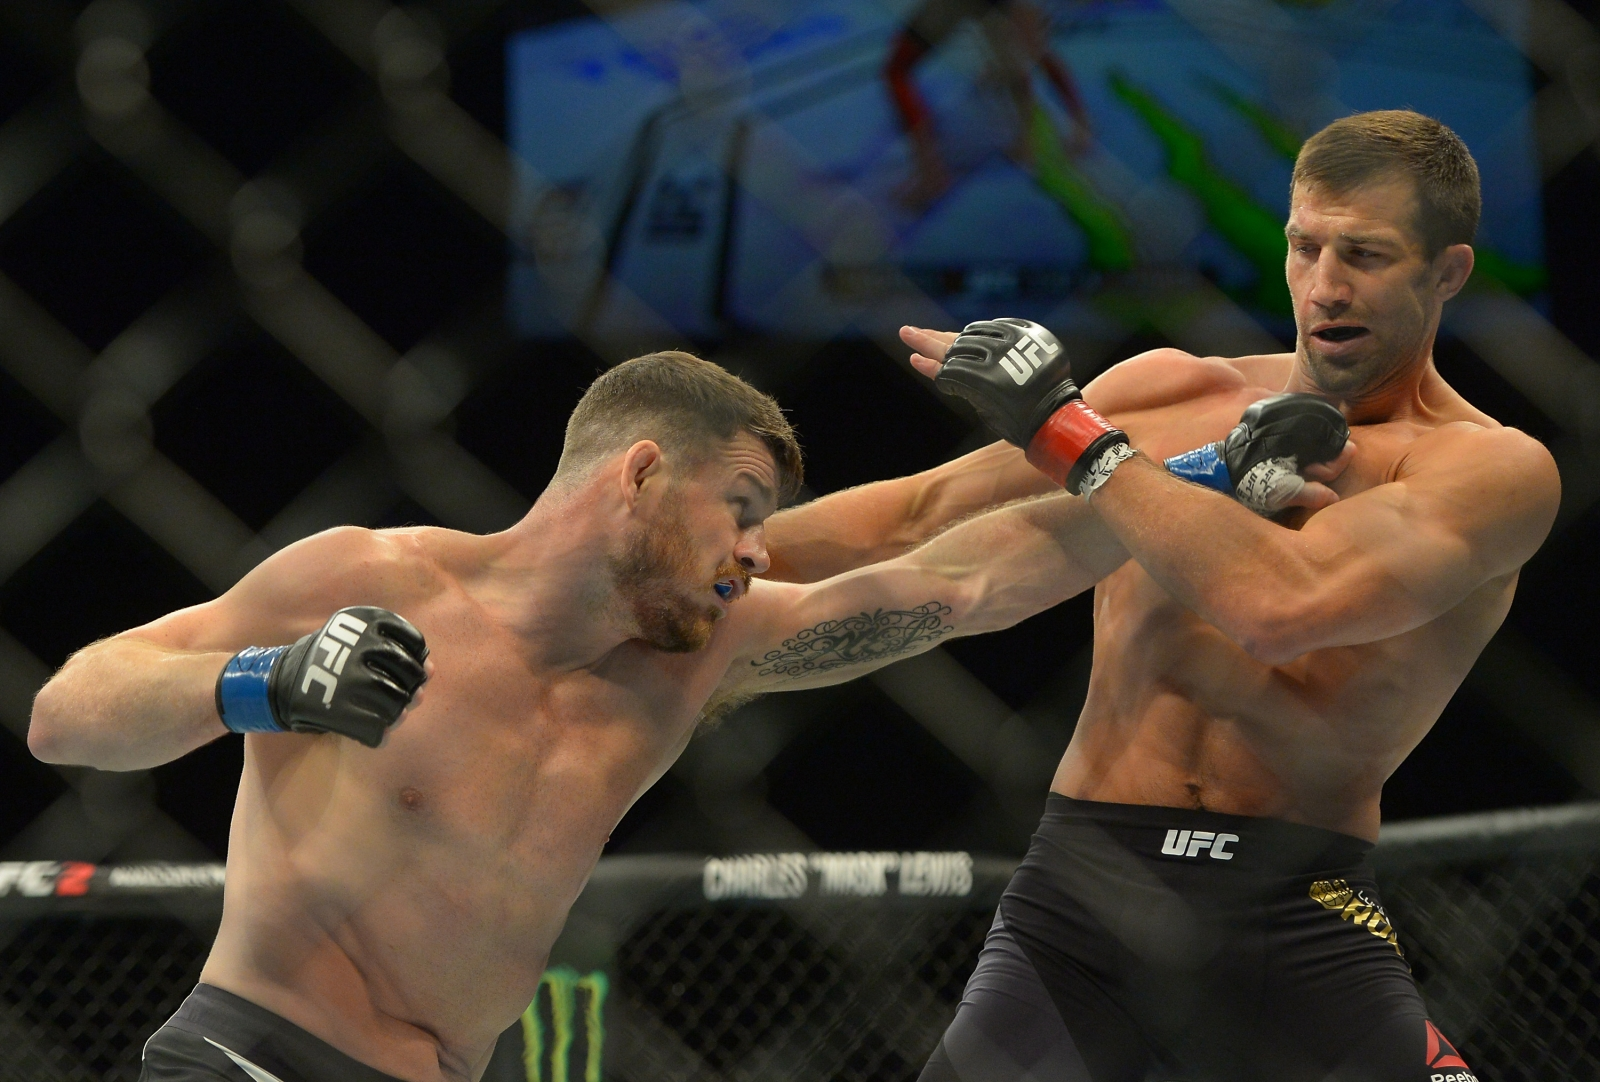 Michael Bisping vs Luke Rockhold